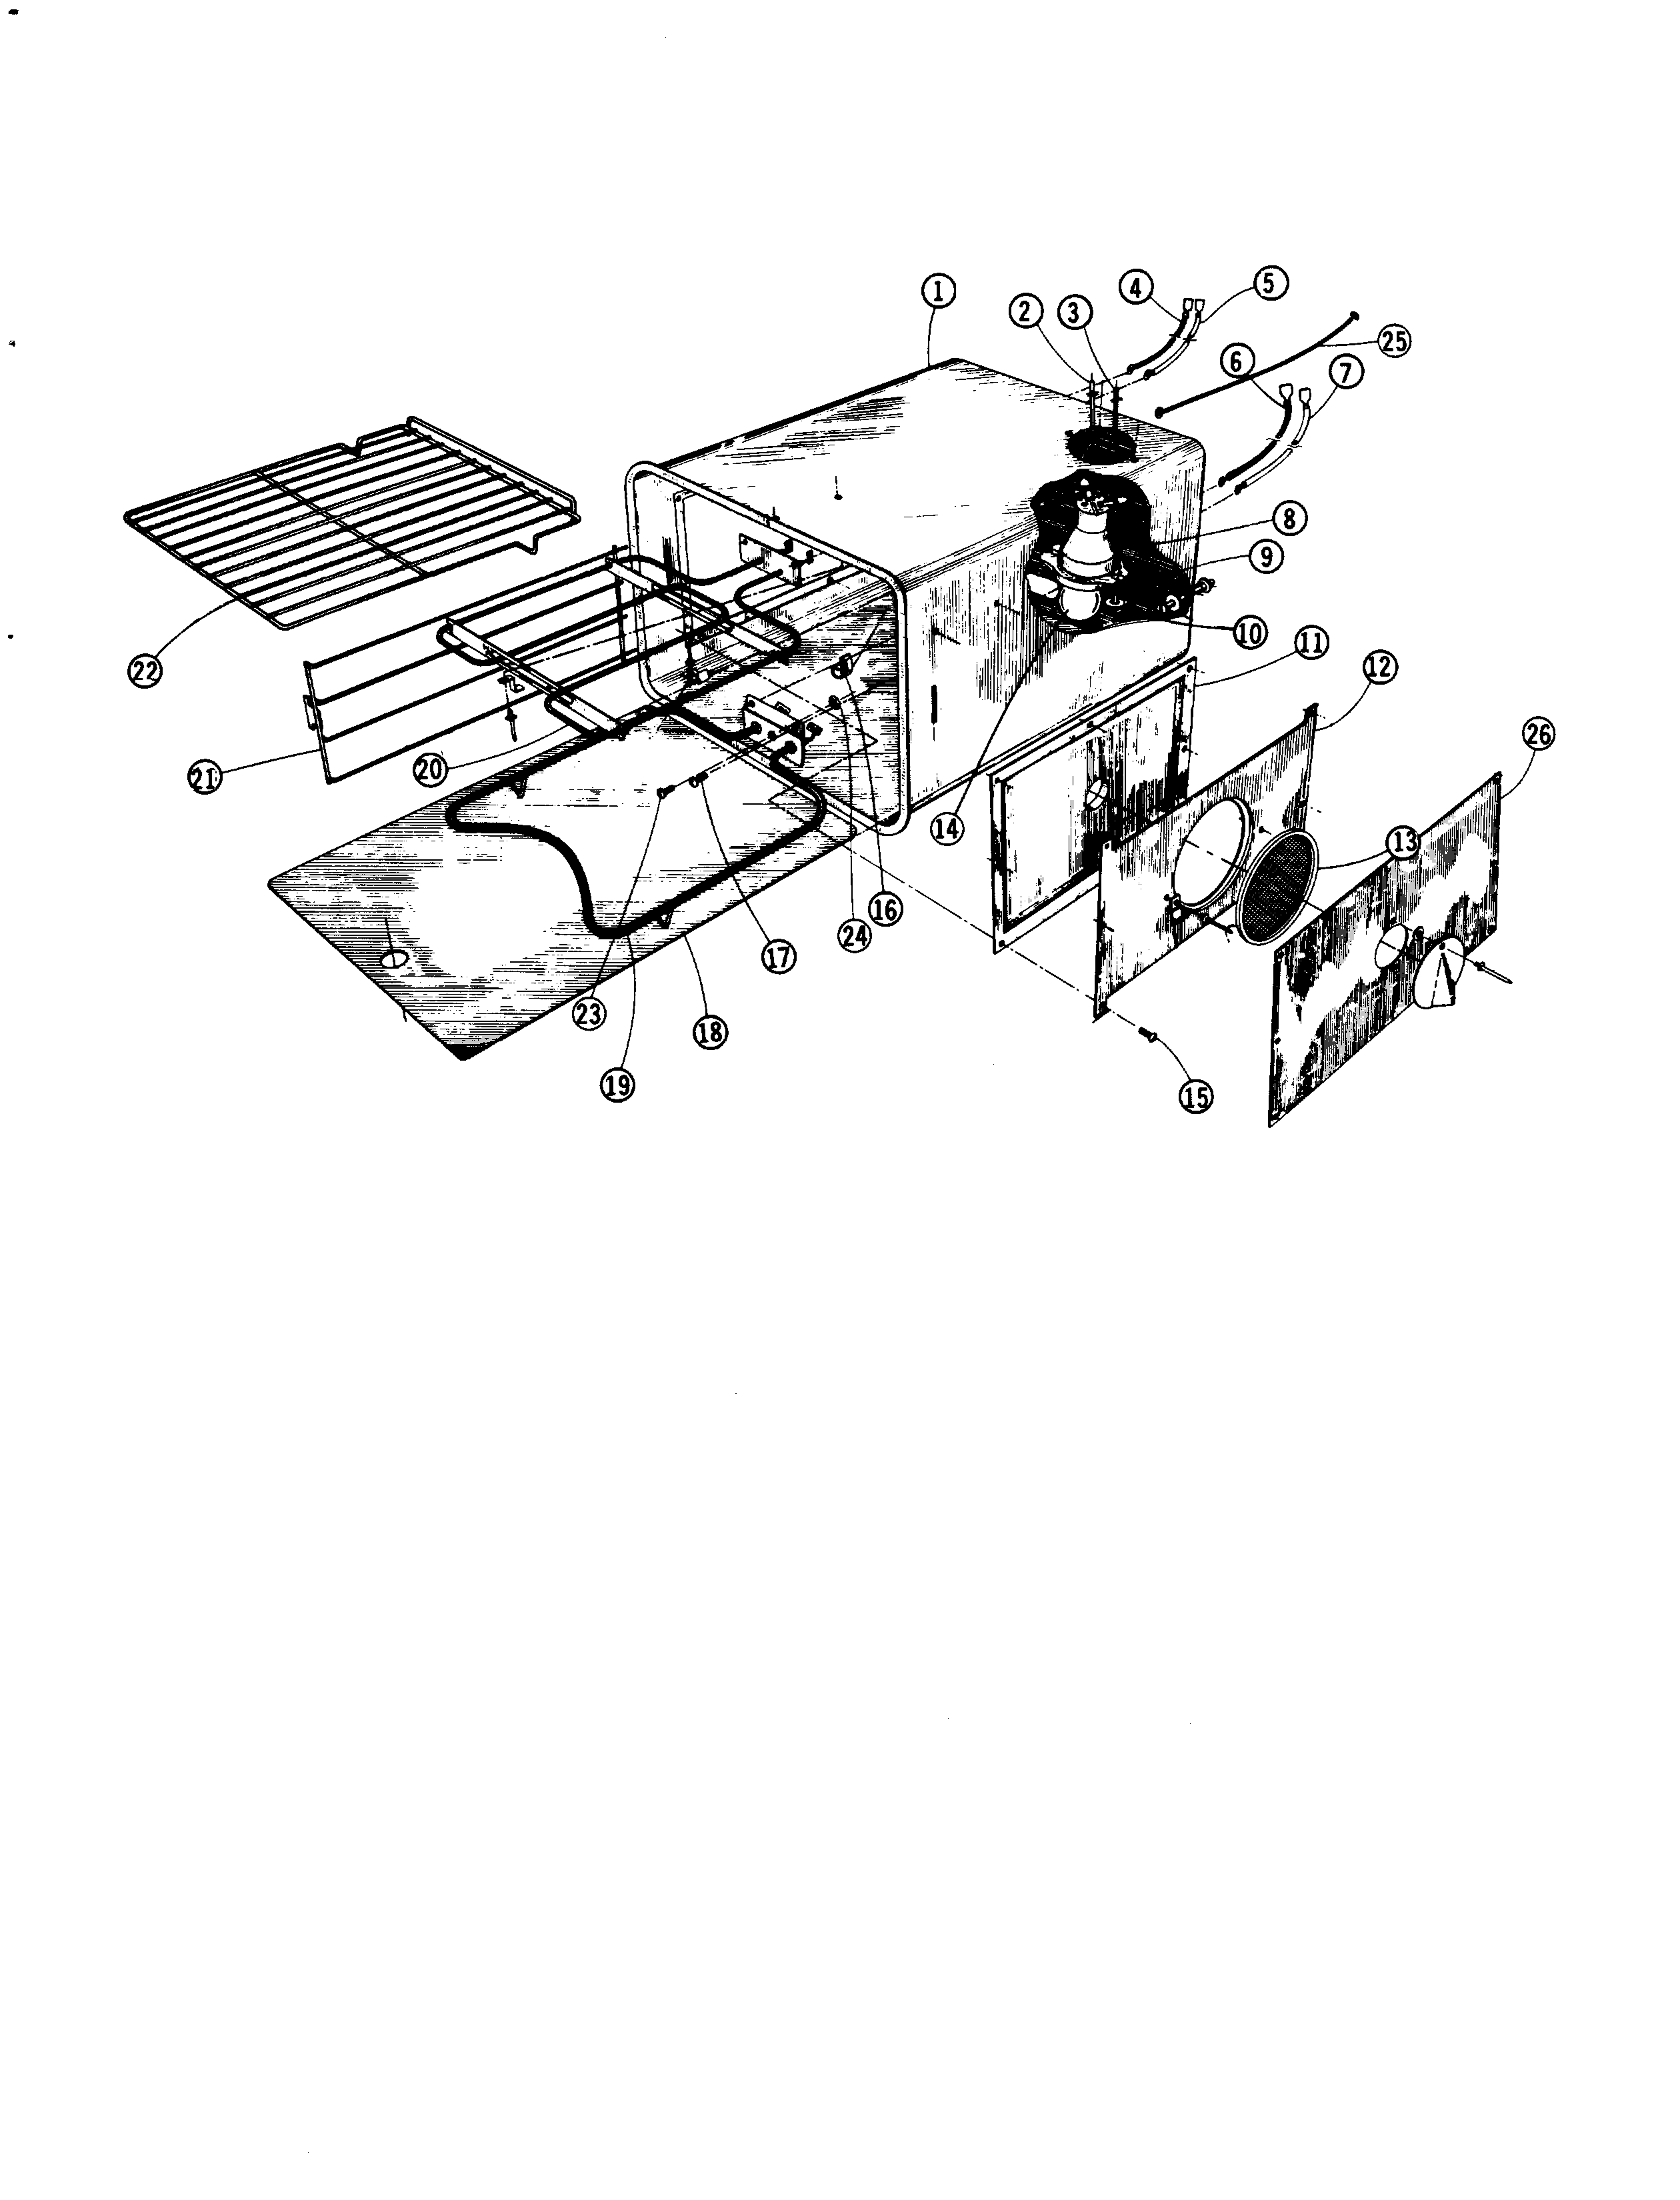 Oven Parts on York Blower Motor Wiring Diagram